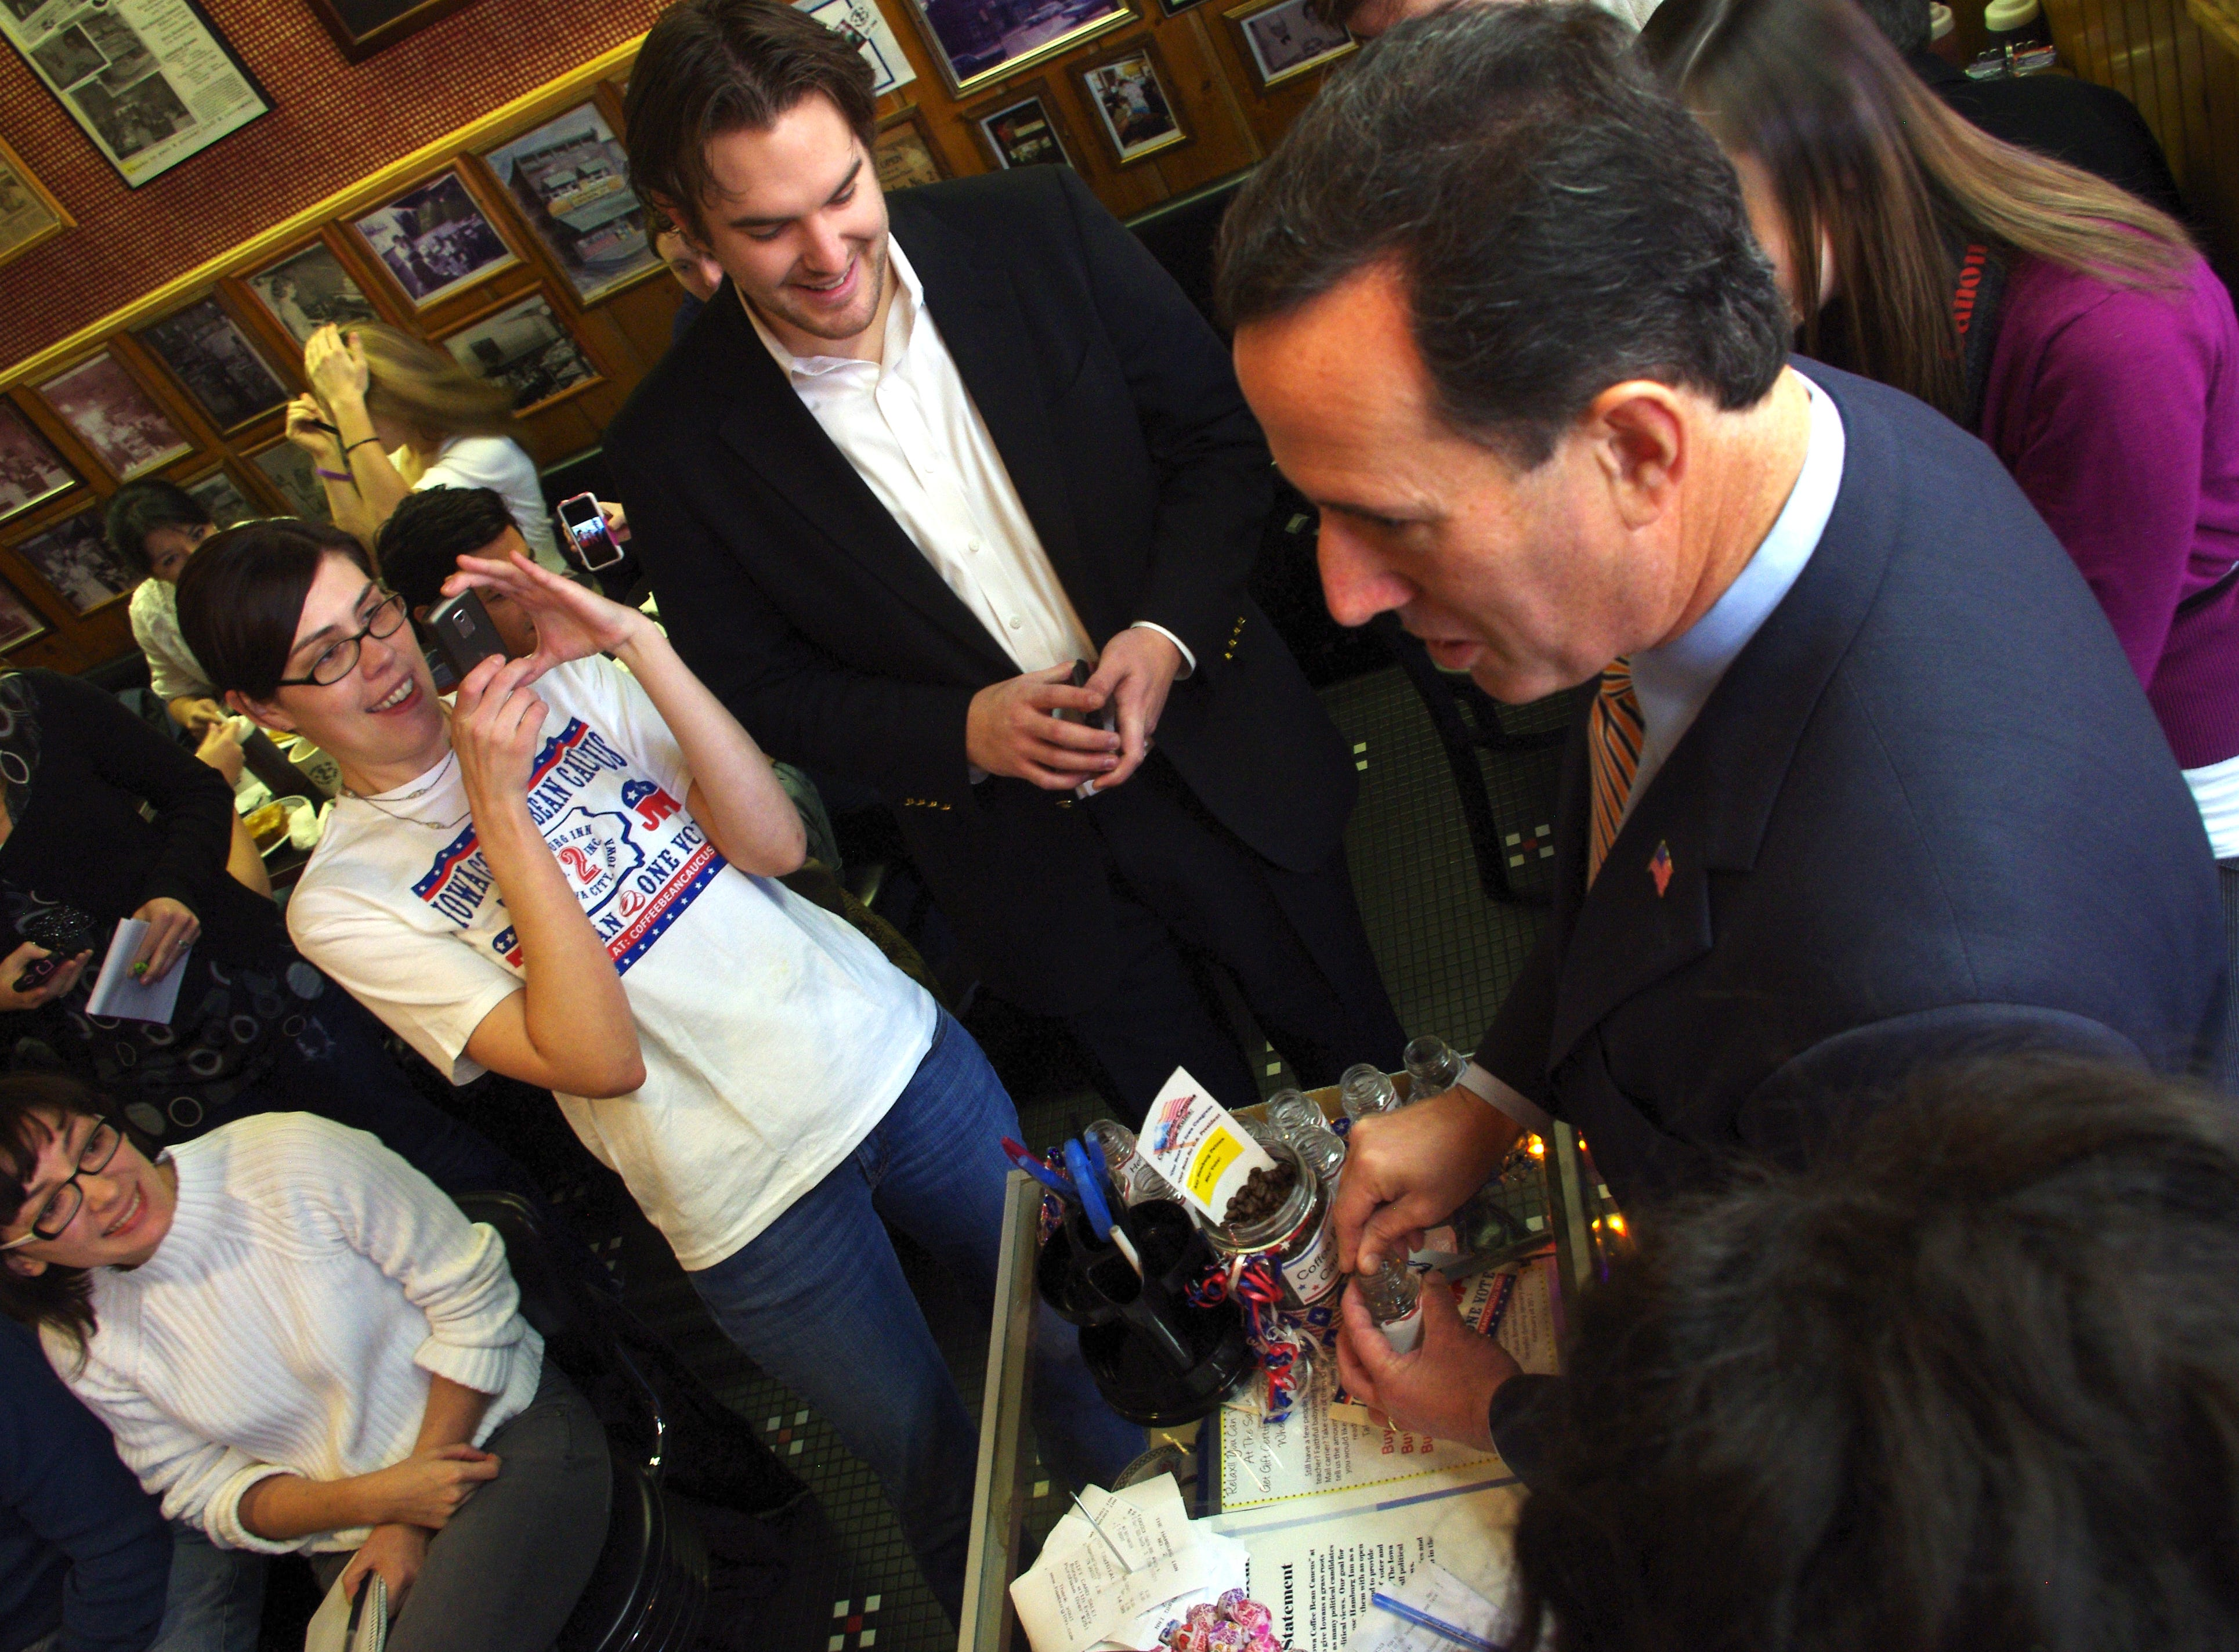 Republican presidential candidate Rick Santorum shakes hands with and greets Iowans Thursday, Nov. 17, 2011, at the Iowa Coffee Bean Caucus at the Hamburg Inn. Santorum said his leadership in the Senate and House of Representatives speaks for itself in making him a viable candidate.